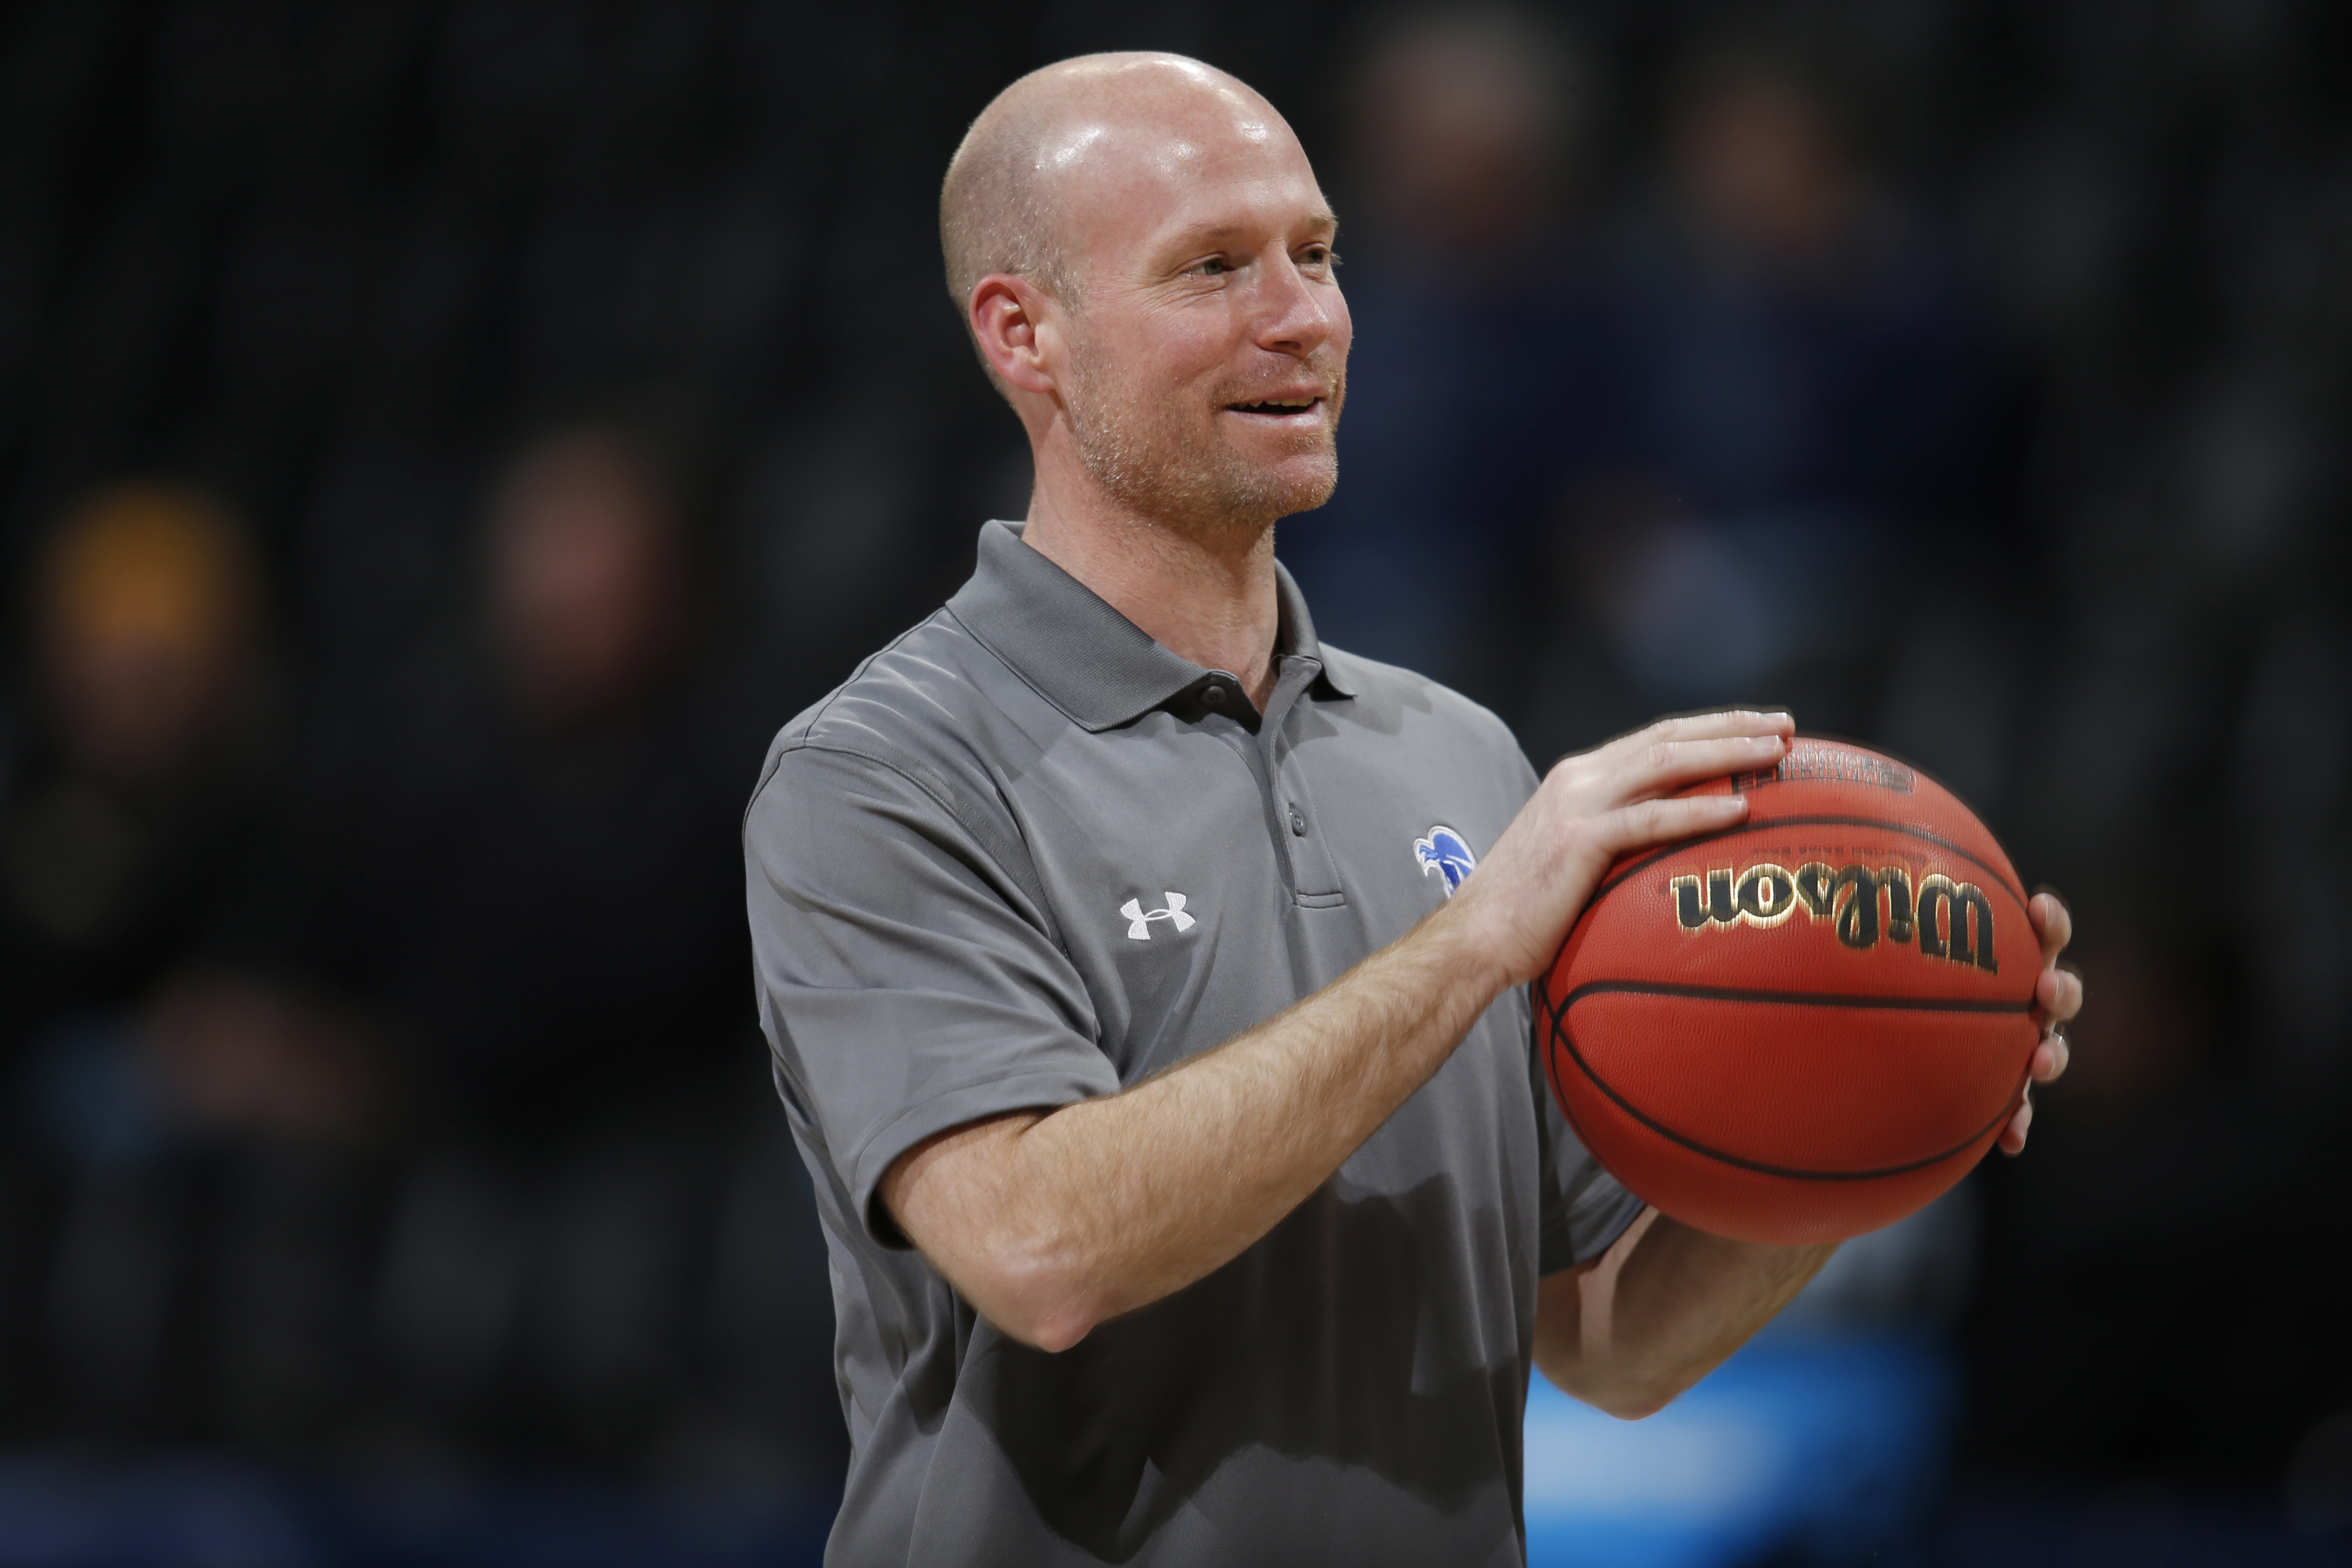 Seton Hall coach Kevin Willard directs a drill during practice for a first-round men's college basketball game Wednesday, March 16, 2016, in the NCAA Tournament in Denver. Seton Hall faces Gonzaga on Thursday. (AP Photo/David Zalubowski)